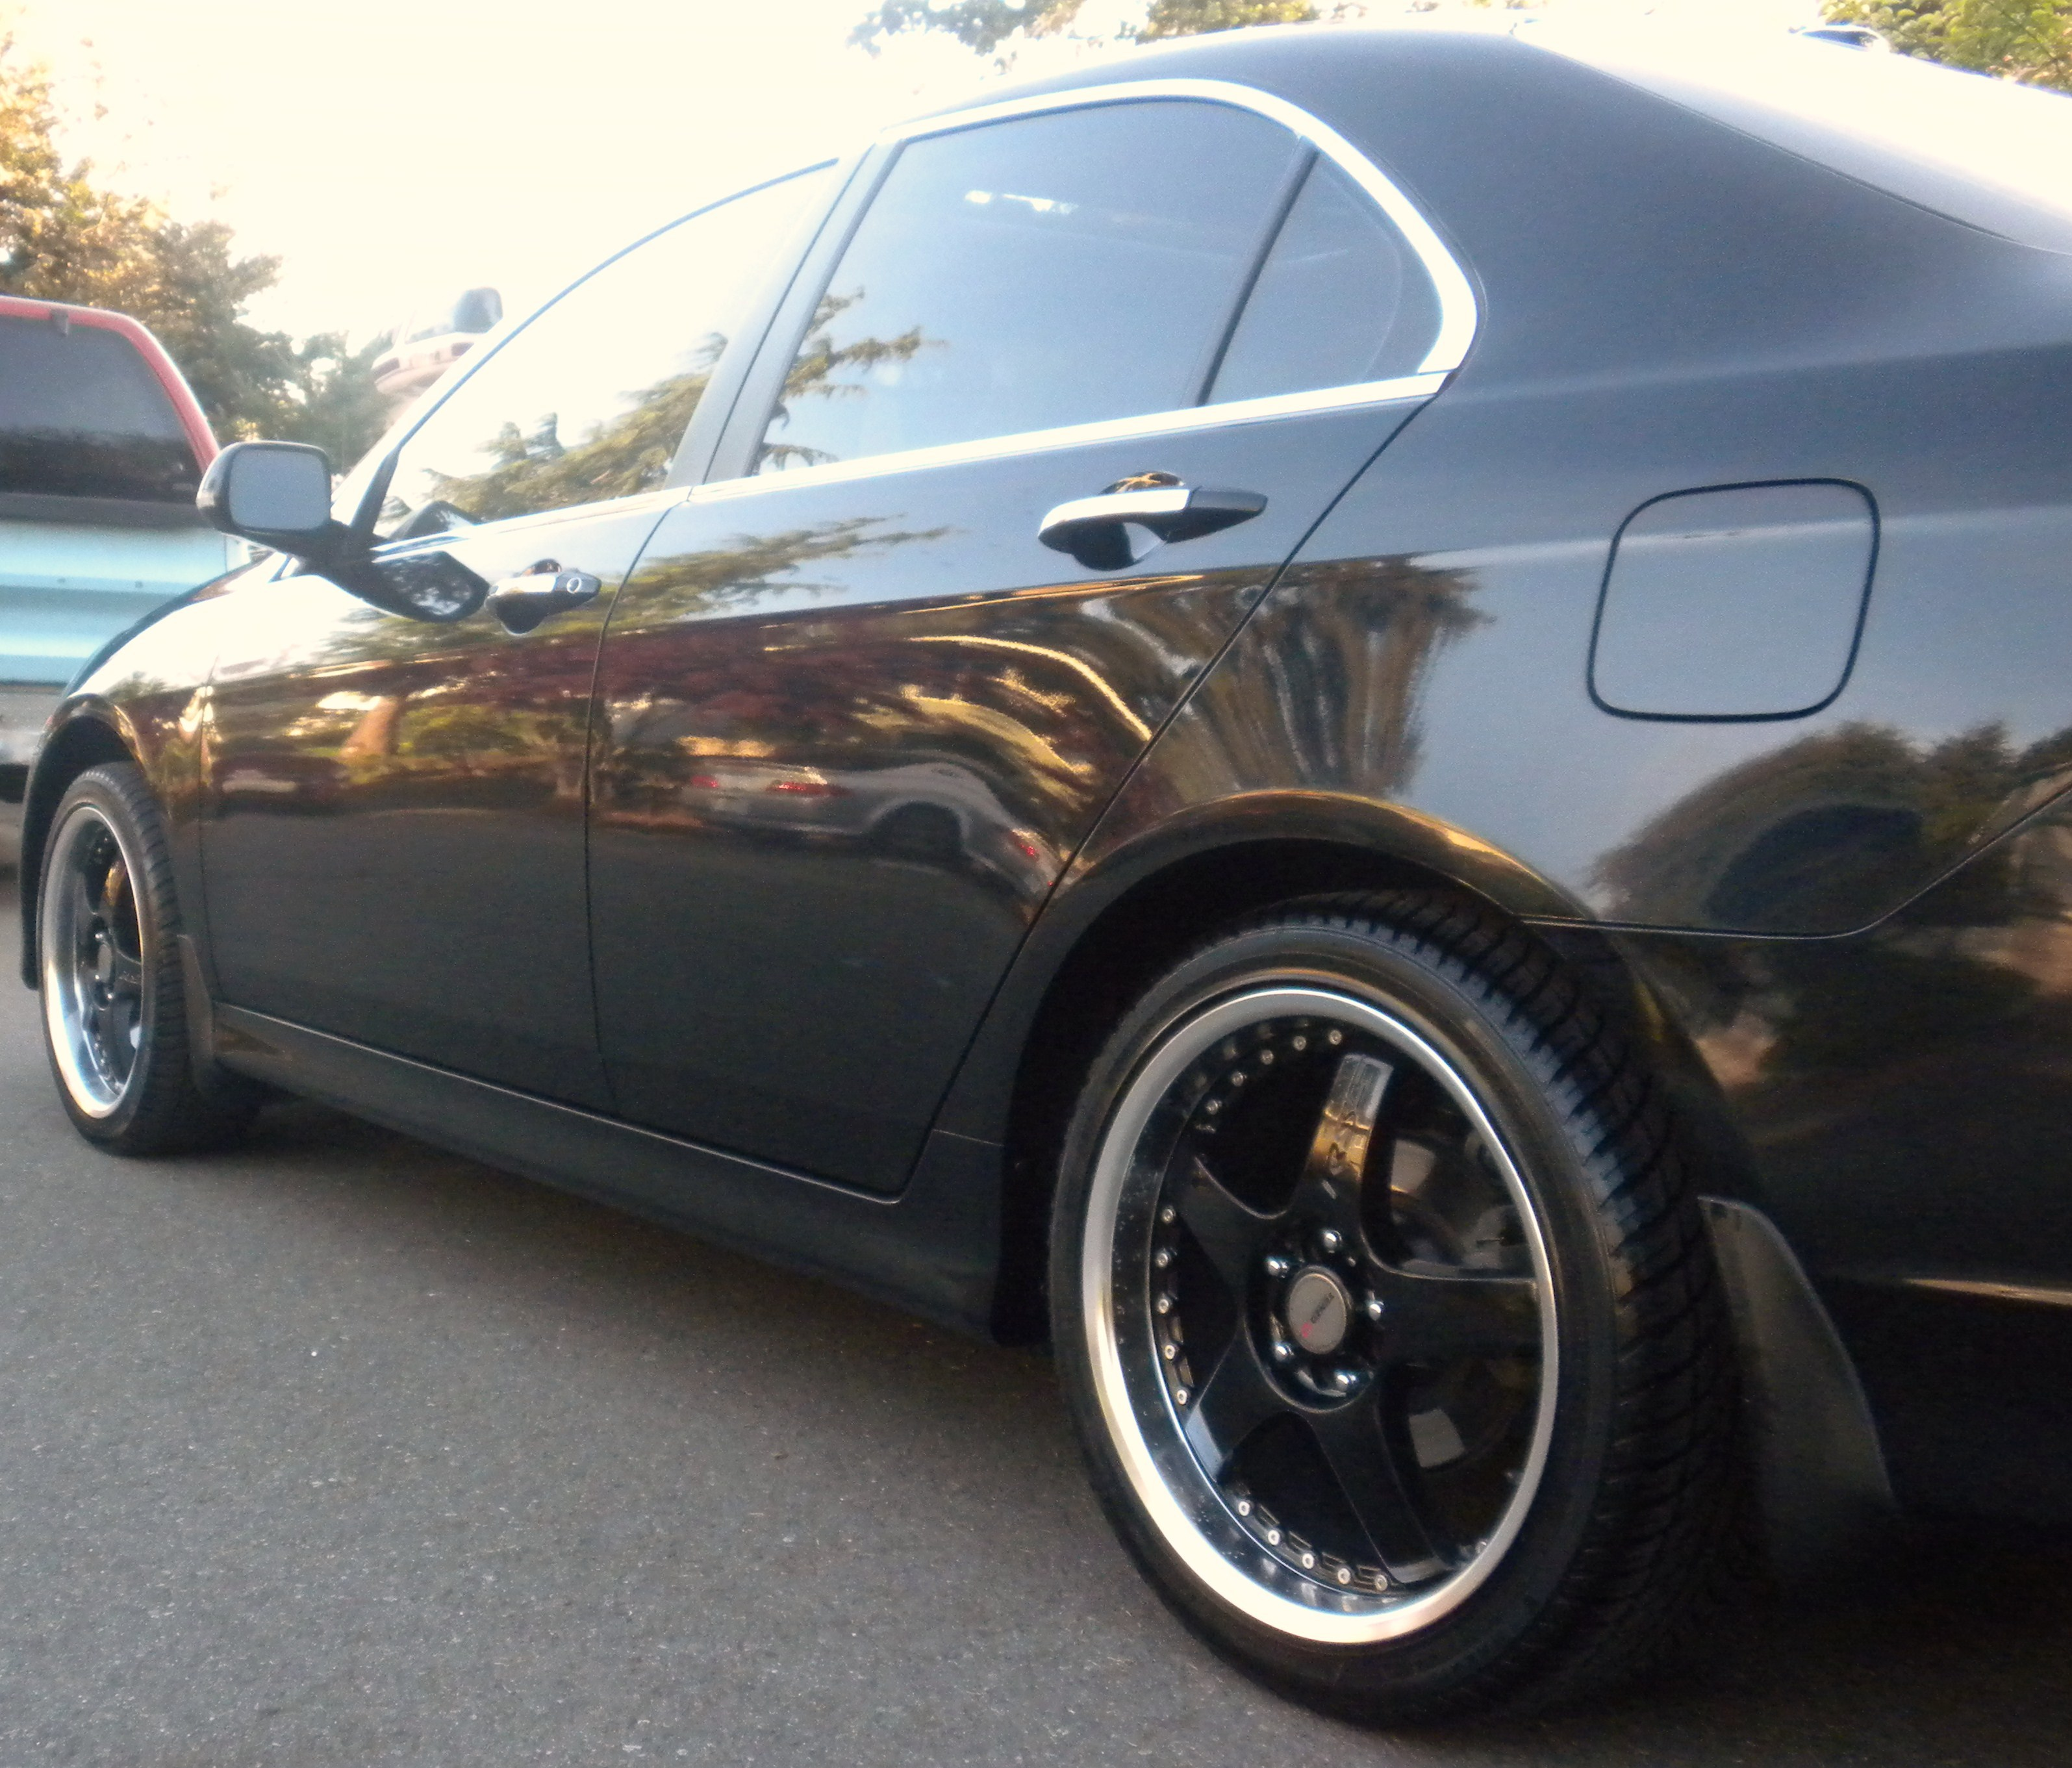 Tinga 2008 Acura TSX Specs, Photos, Modification Info At